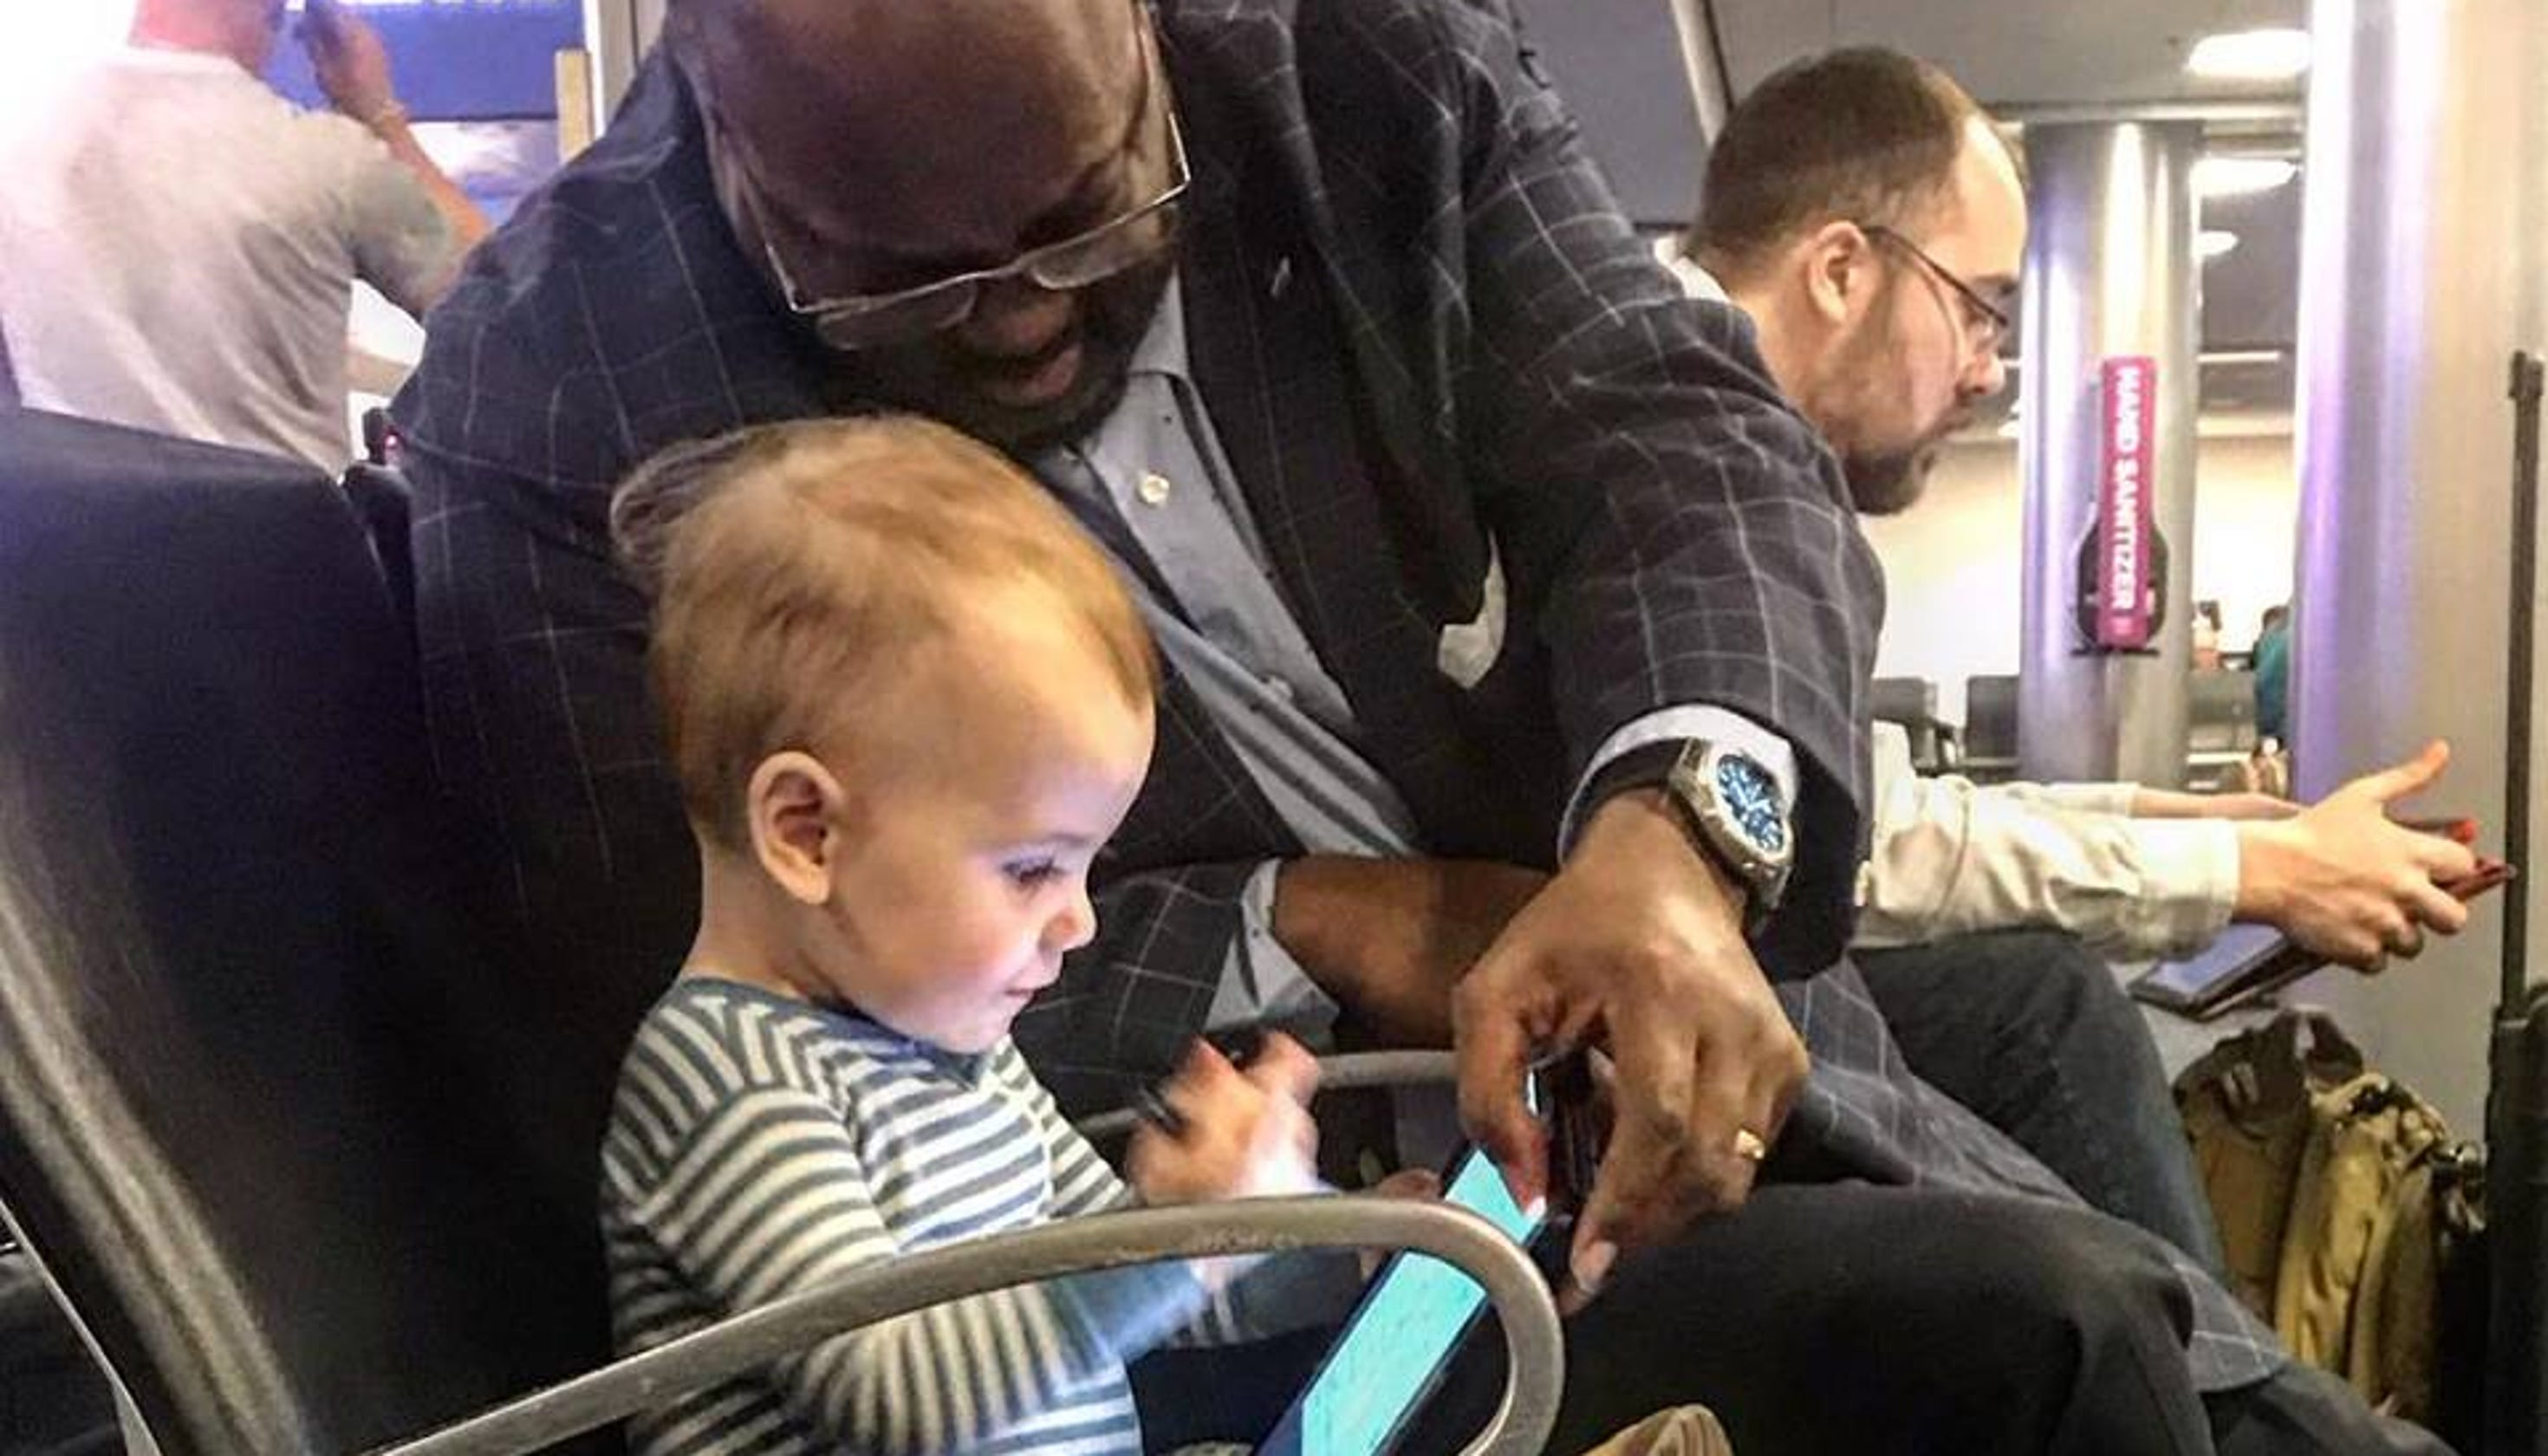 Dad thanks kind stranger who entertained his daughter in the airport